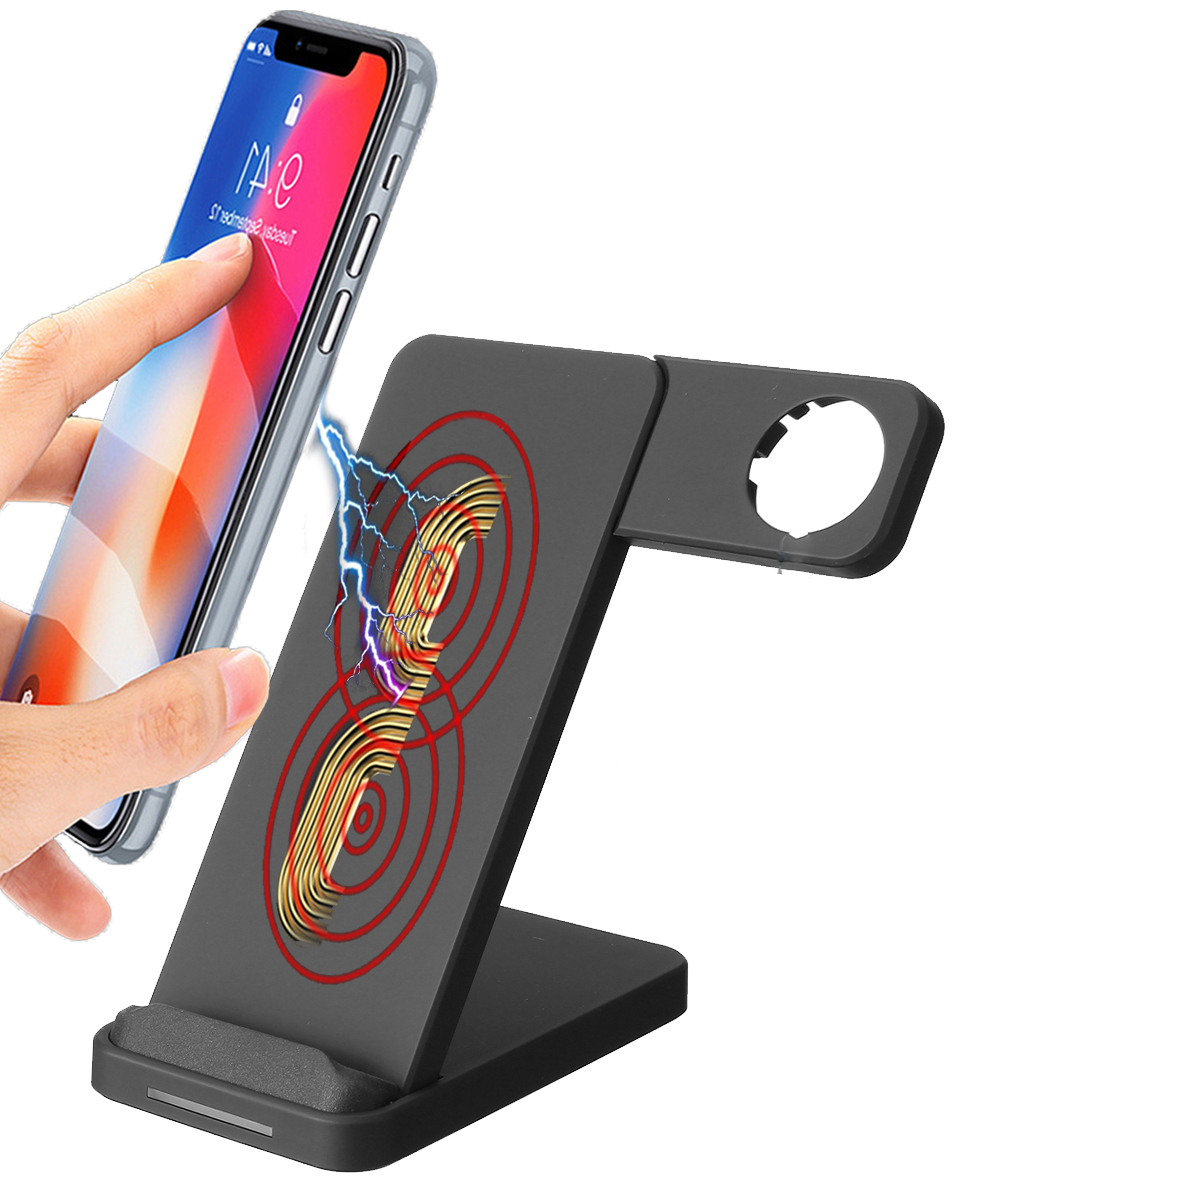 10W Dual Coils Qi Wireless Charger Fast Charging +